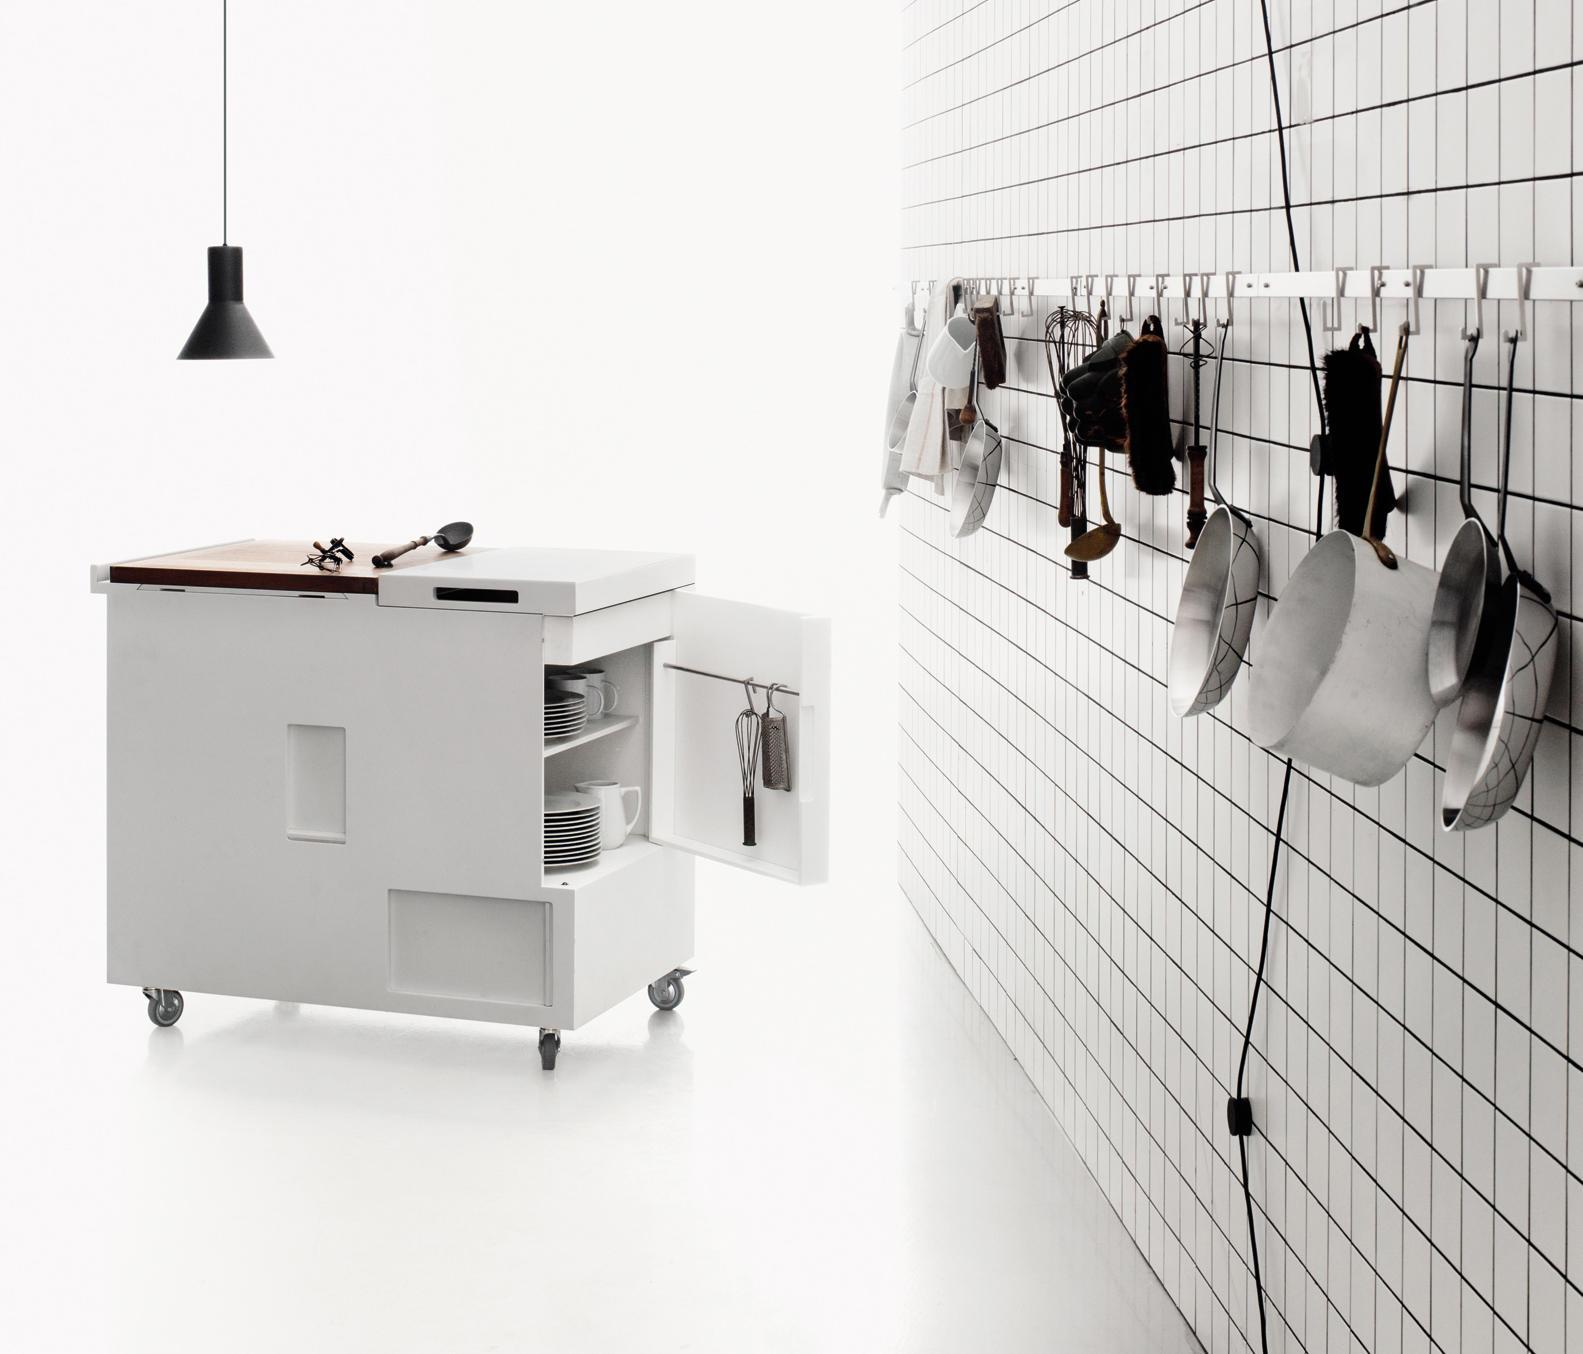 MINIKITCHEN - Compact kitchens from Boffi | Architonic